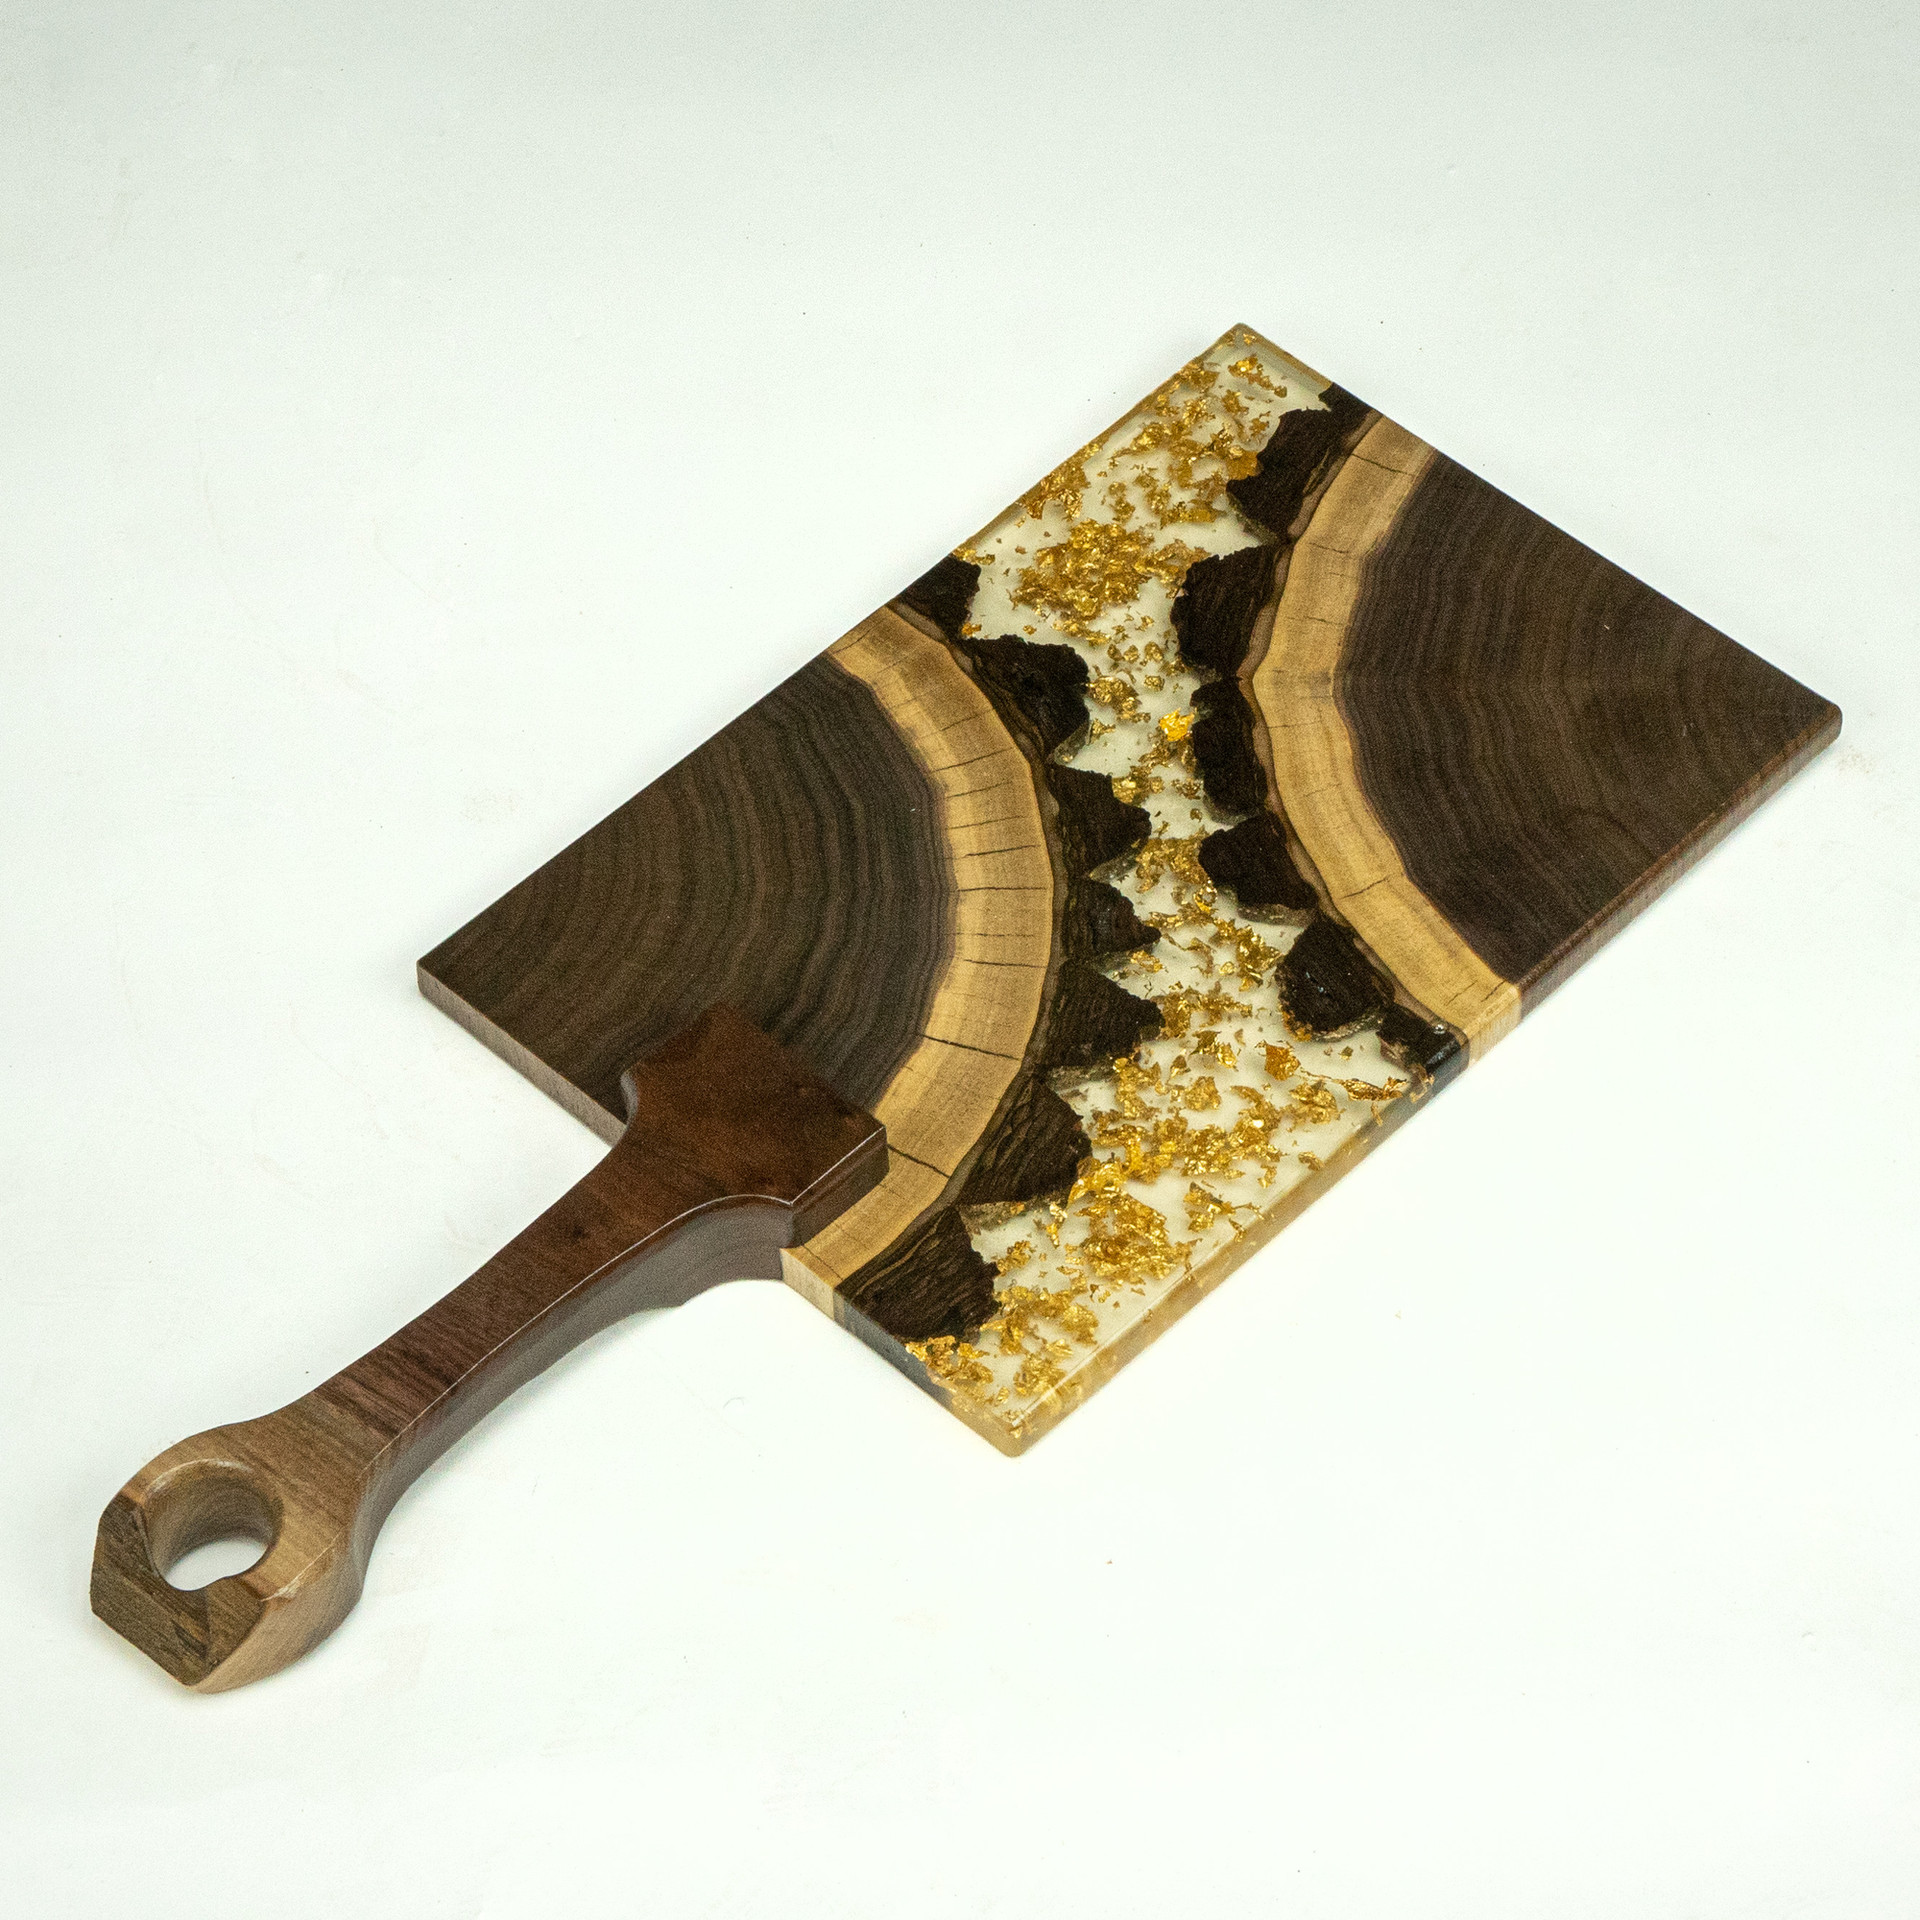 005a walnut with handle.jpg